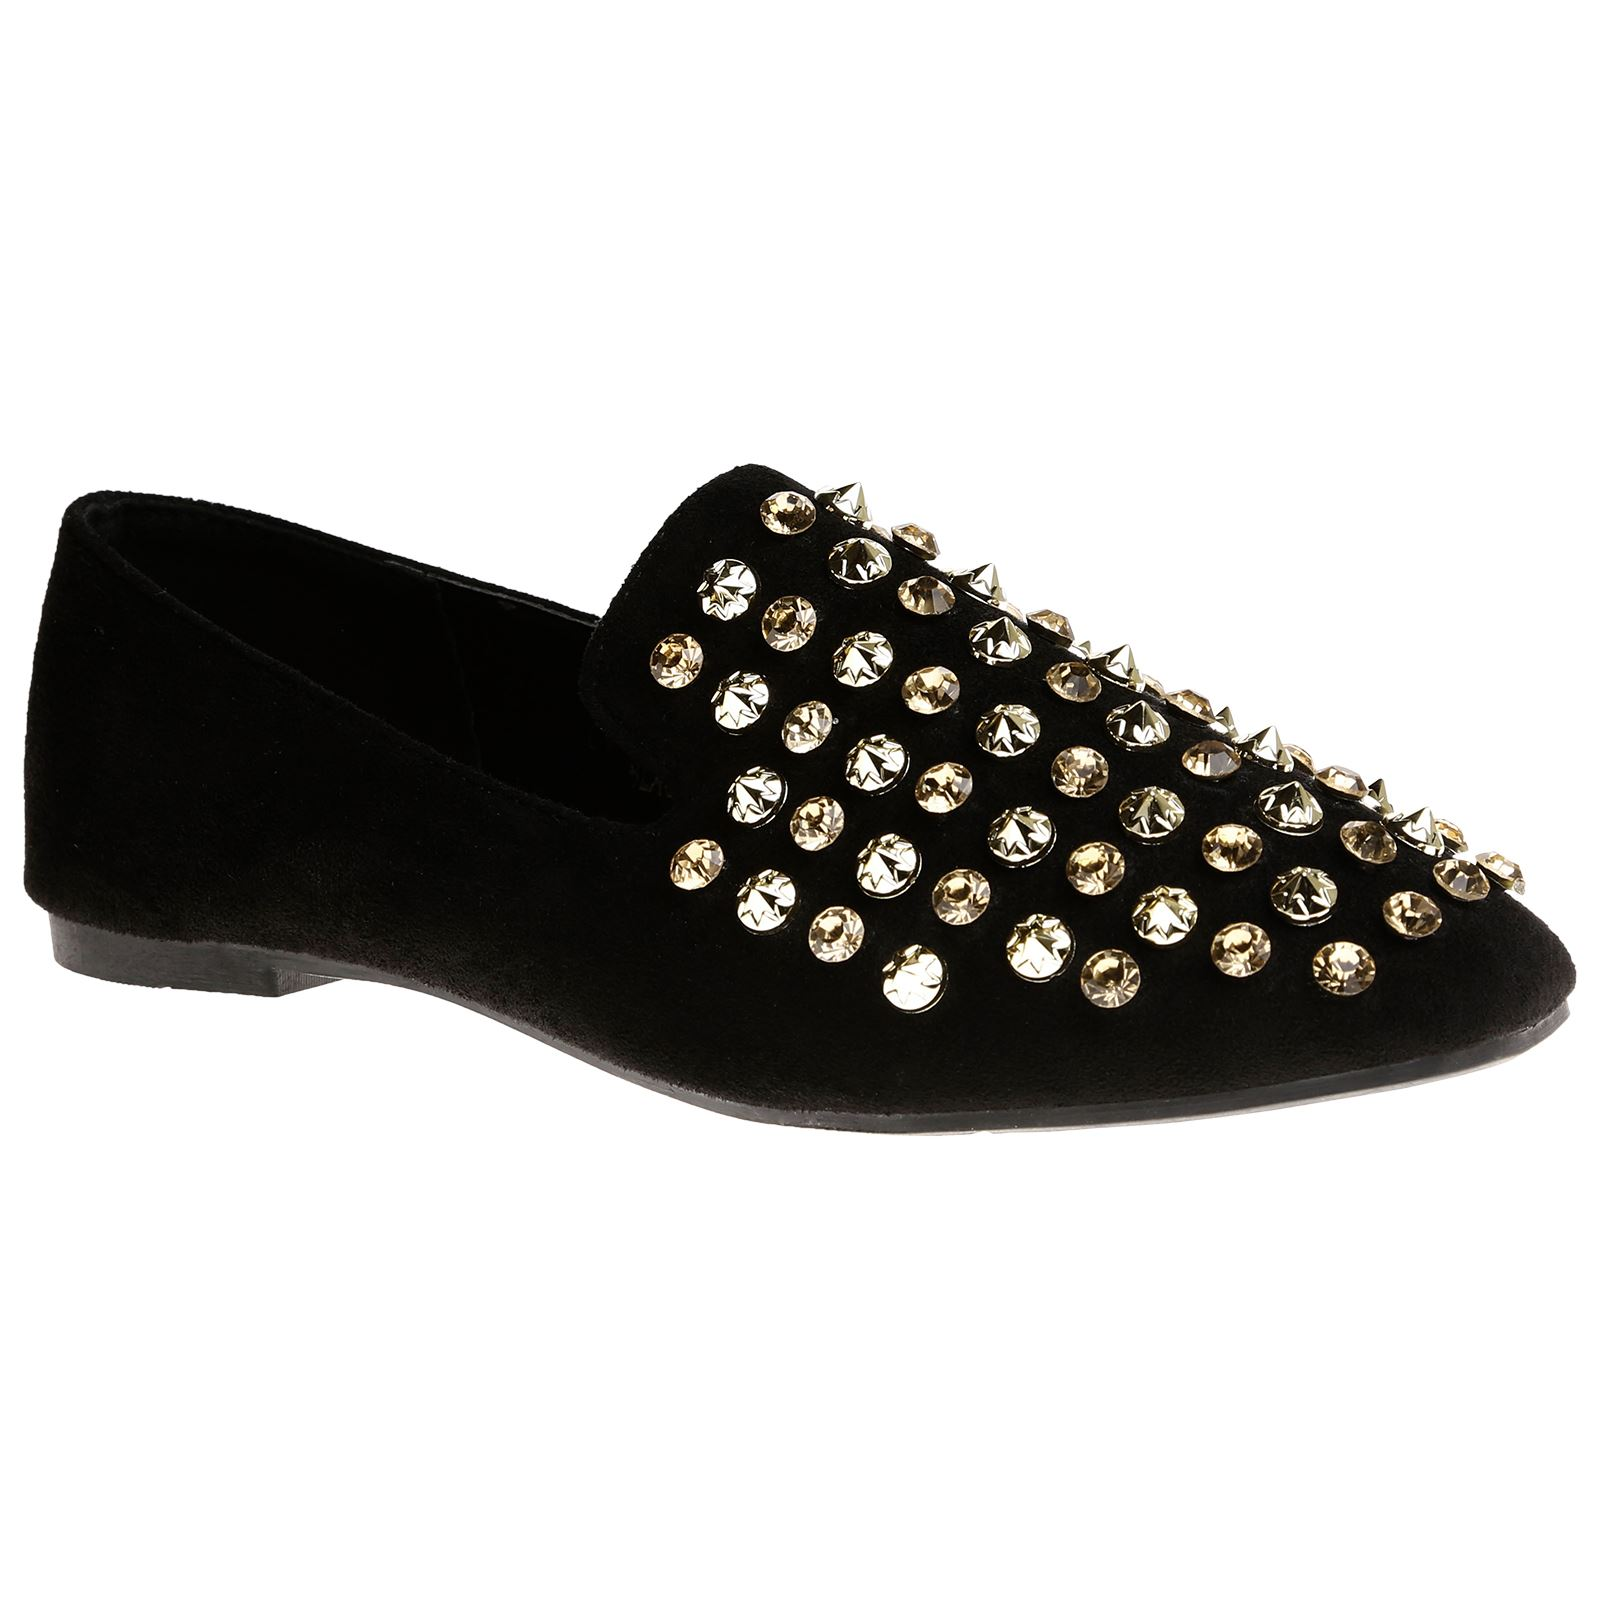 Dani Mujer Zapatos Flats Low Heels Studded Fringe Loafers Ladies Zapatos Mujer Buckle Talla New d475cf